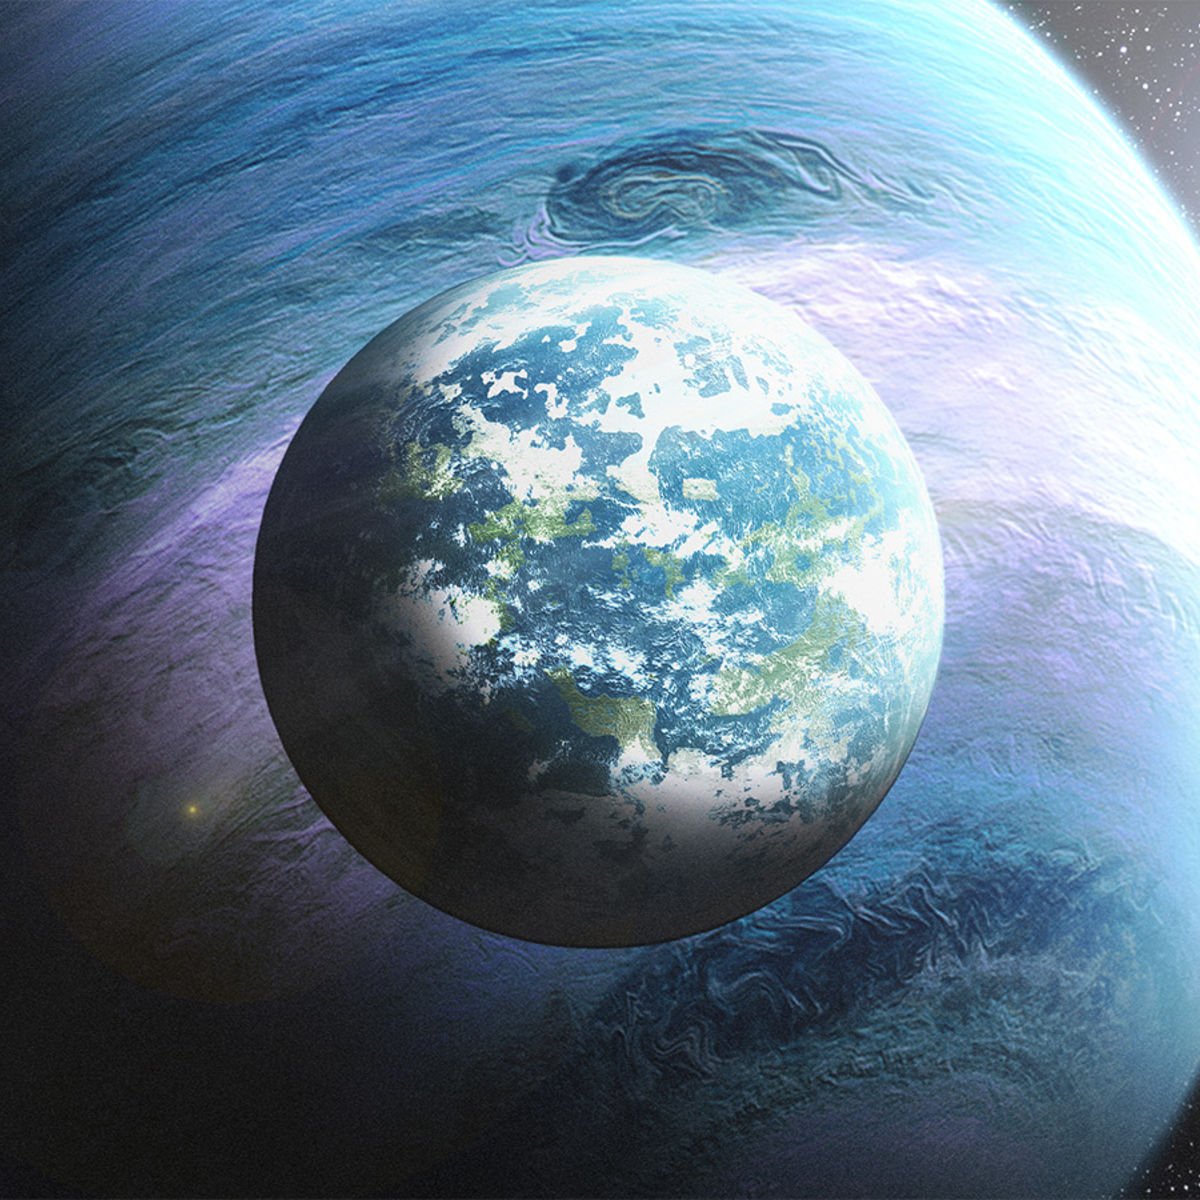 Artwork depicting a gas giant exoplanet with a terrestrial moon. Credit: NASA / Gurra943 on DeviantArt